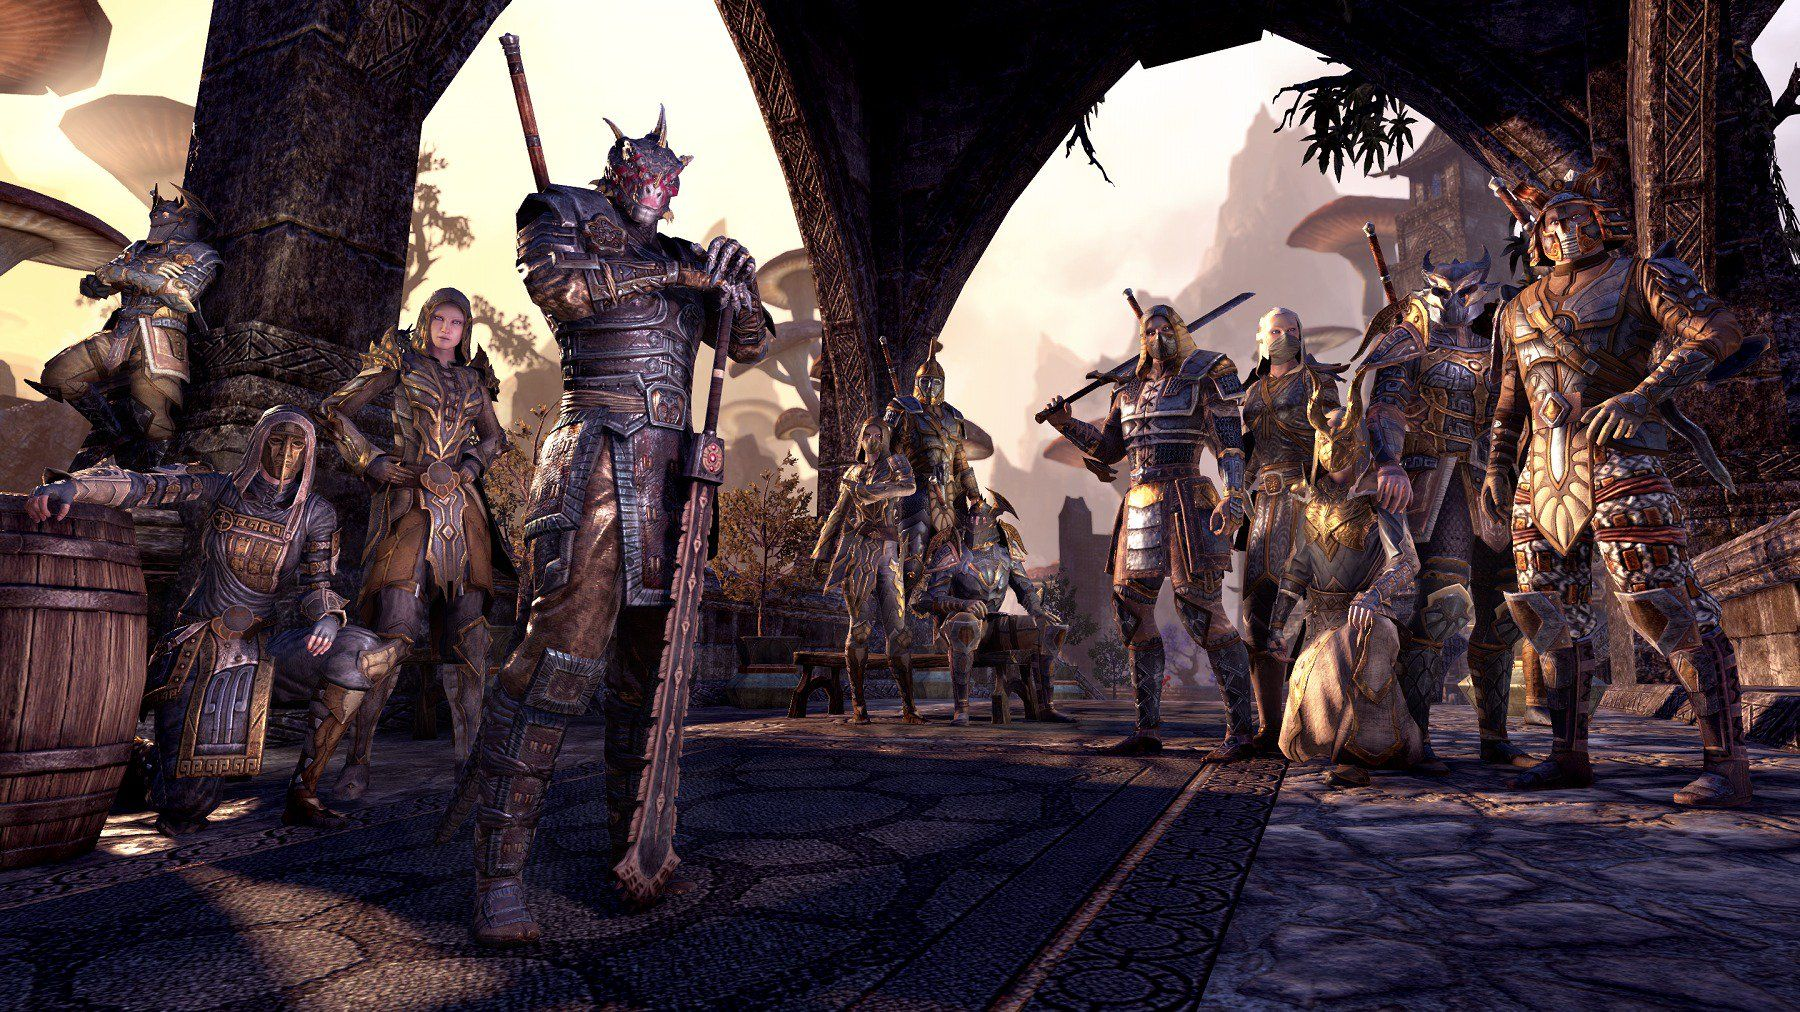 morrowind announced as the next expansion to the elder scrolls